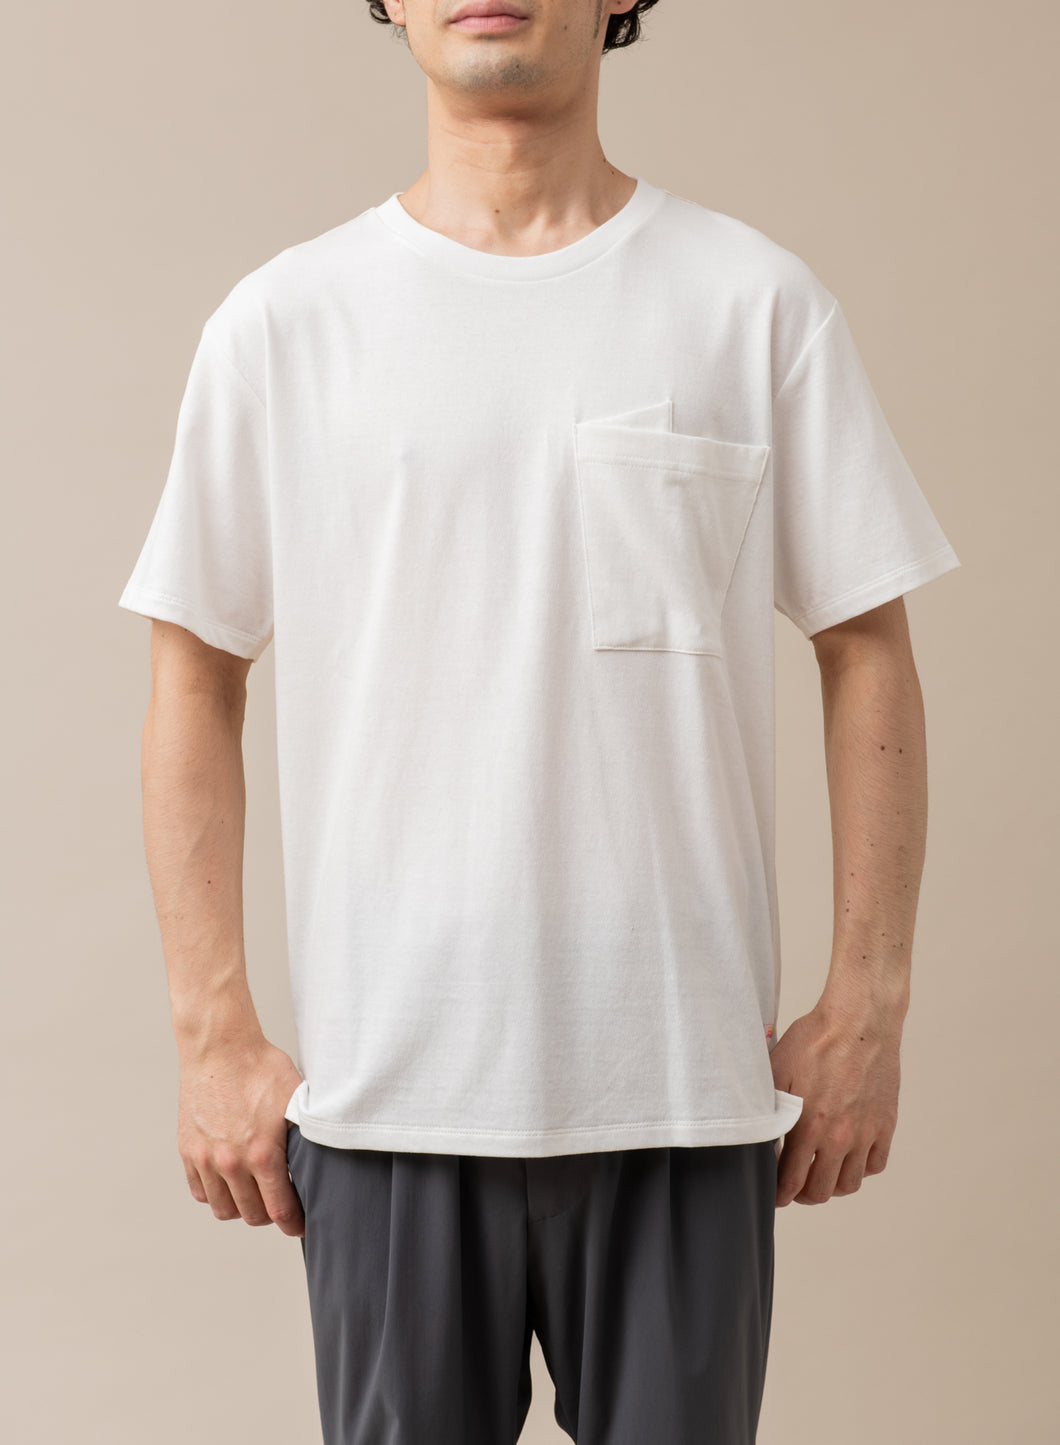 Palms shortsleeve Tee